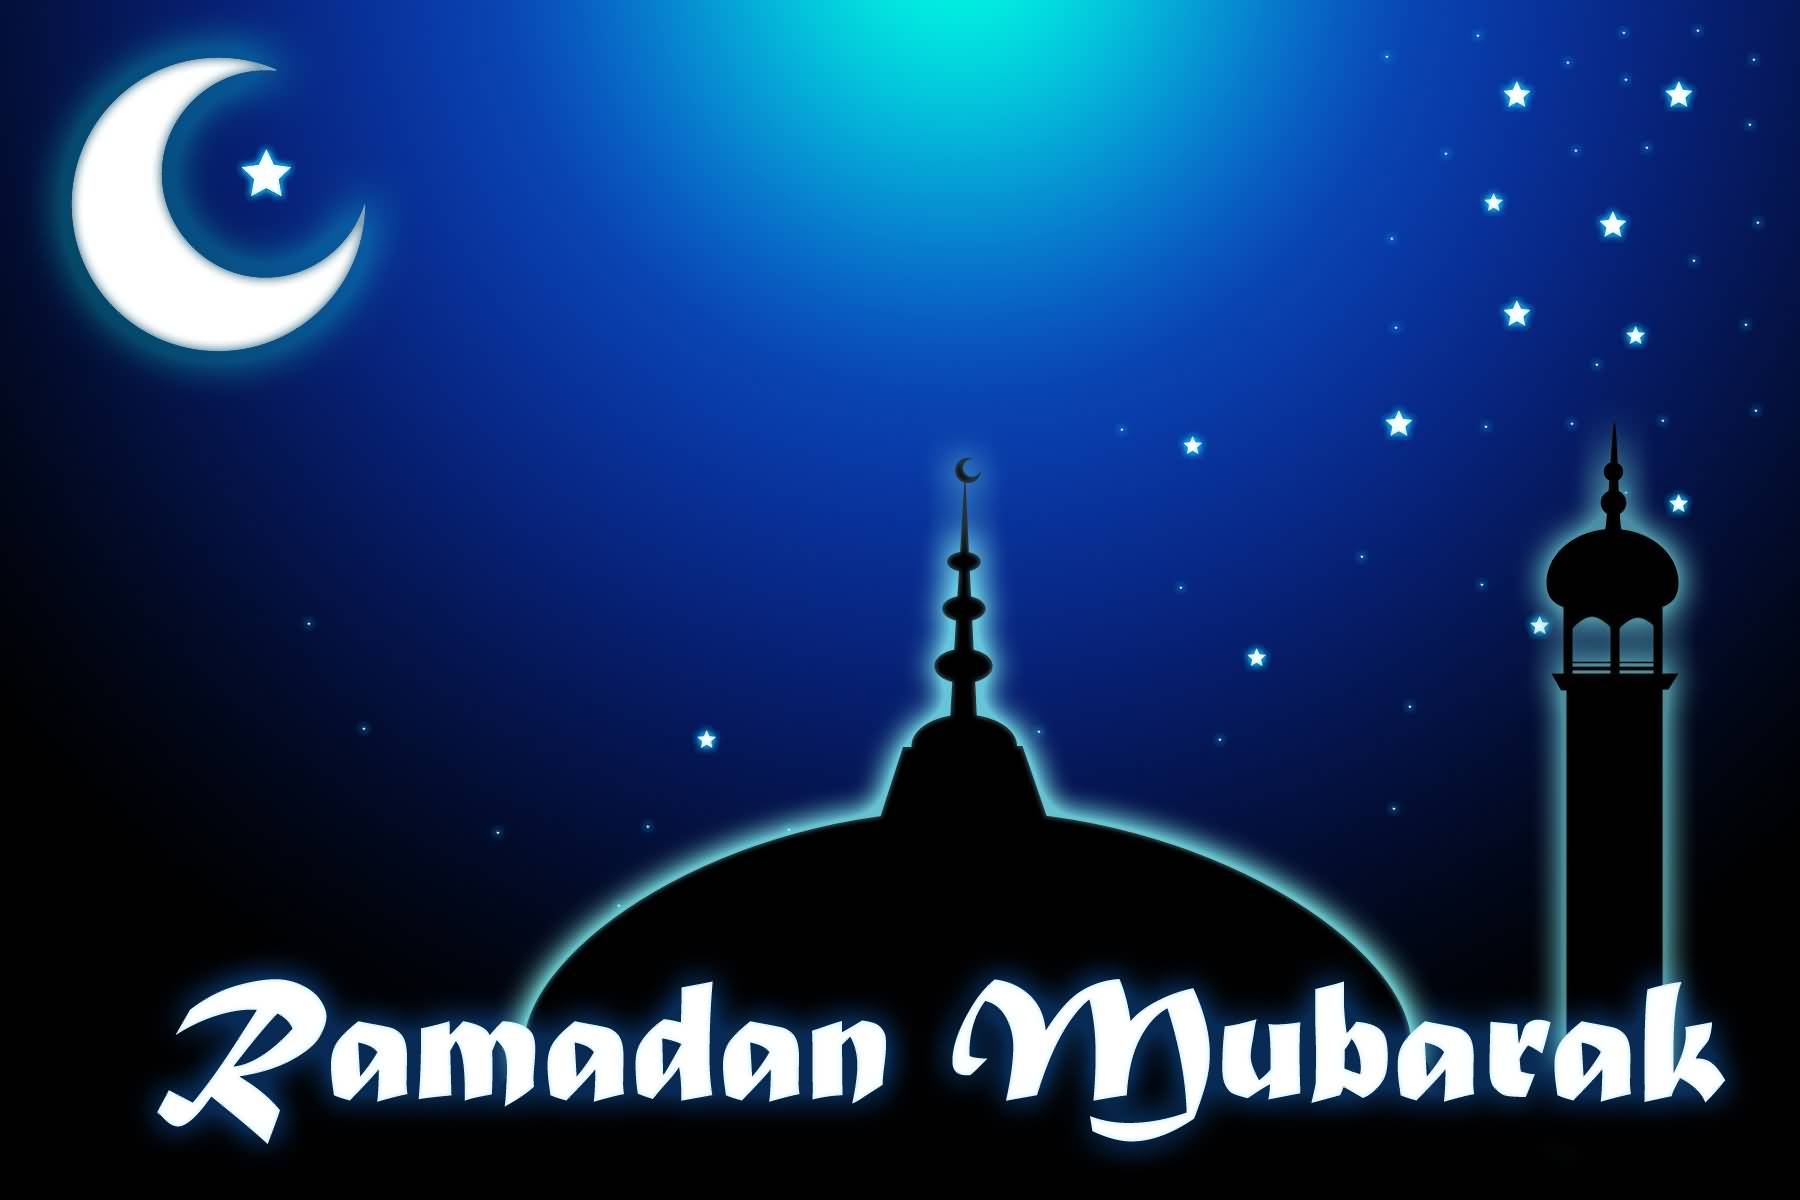 dating ramadan Why do muslims fast during ramadan muslims observe fasting on each day of ramadan - from early in the morning through to sunset - in accordance with a divine commandment recorded in the qur'an.